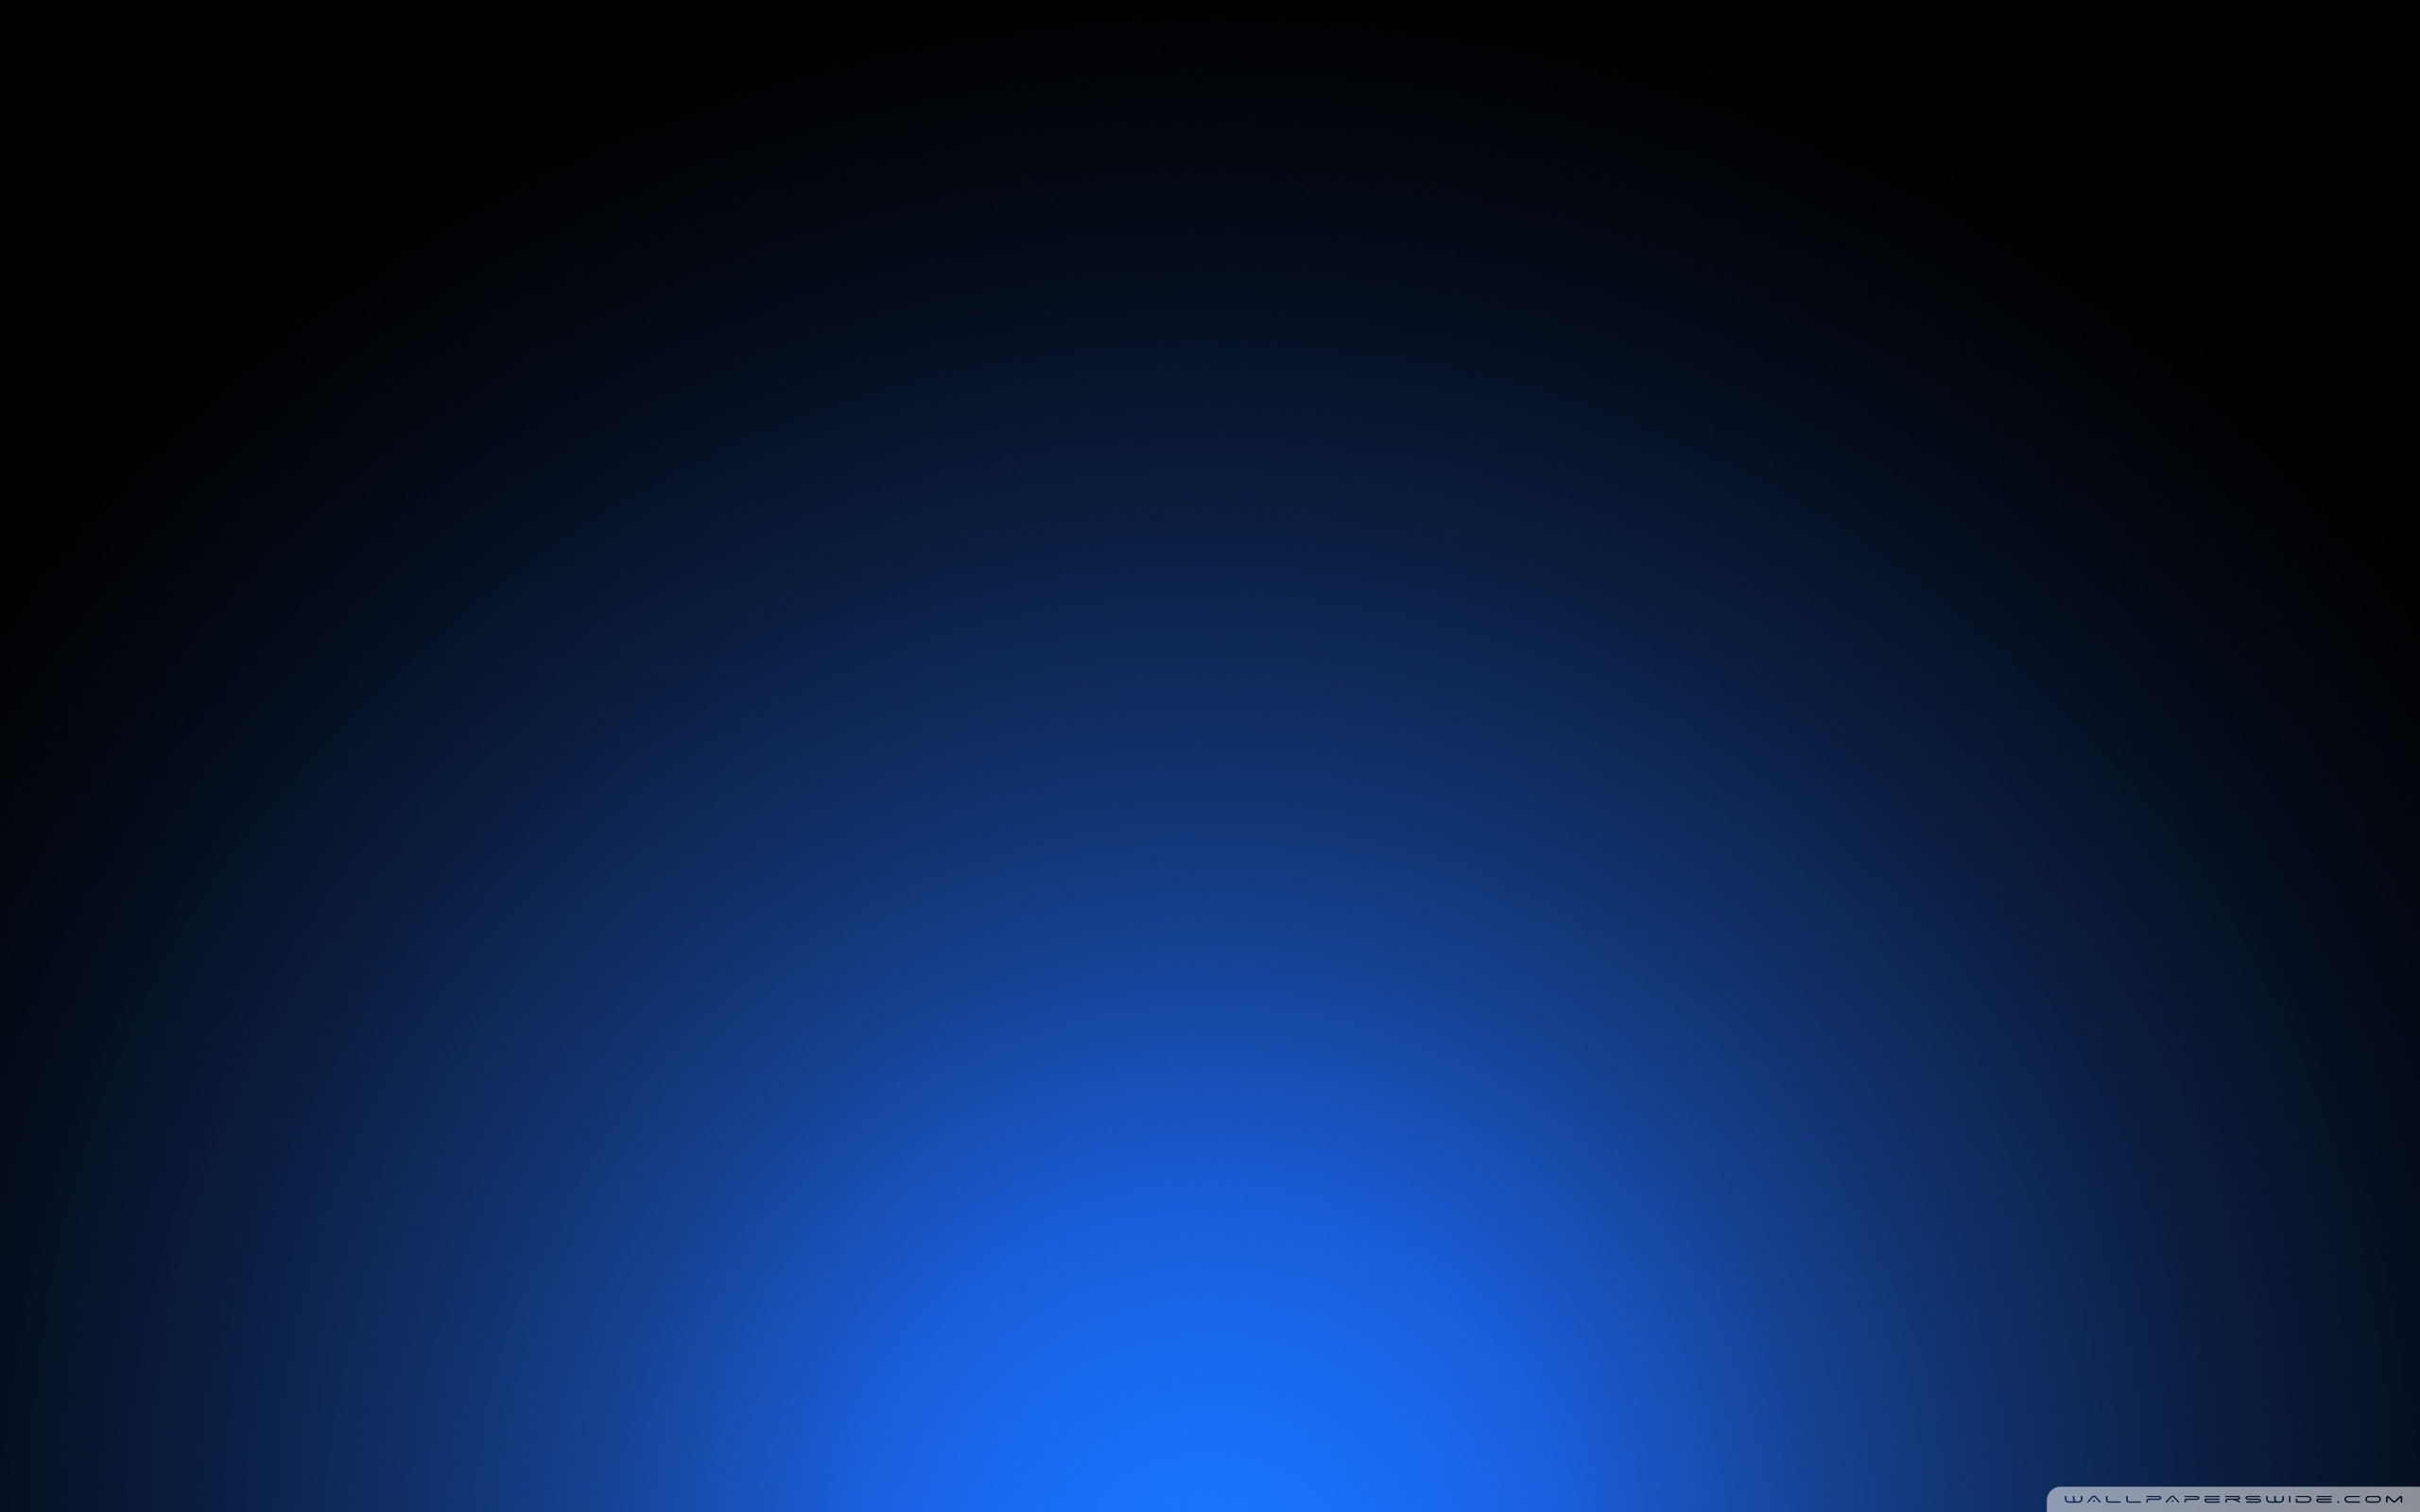 simple blue & black wallpaper ❤ 4k hd desktop wallpaper for 4k